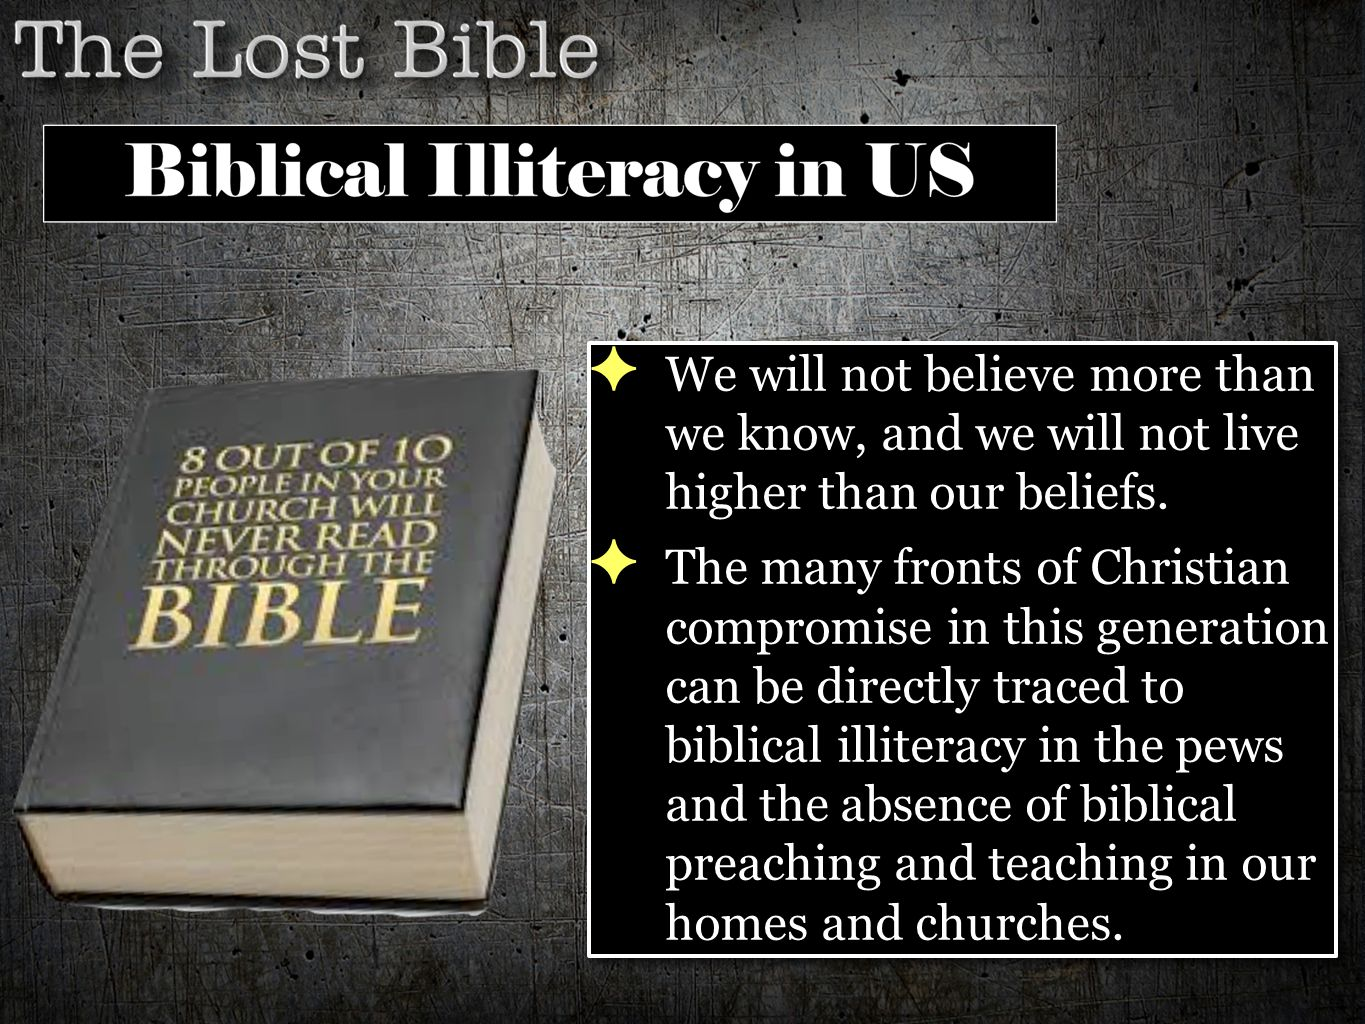 ✦ We will not believe more than we know, and we will not live higher than our beliefs. ✦ The many fronts of Christian compromise in this generation ca